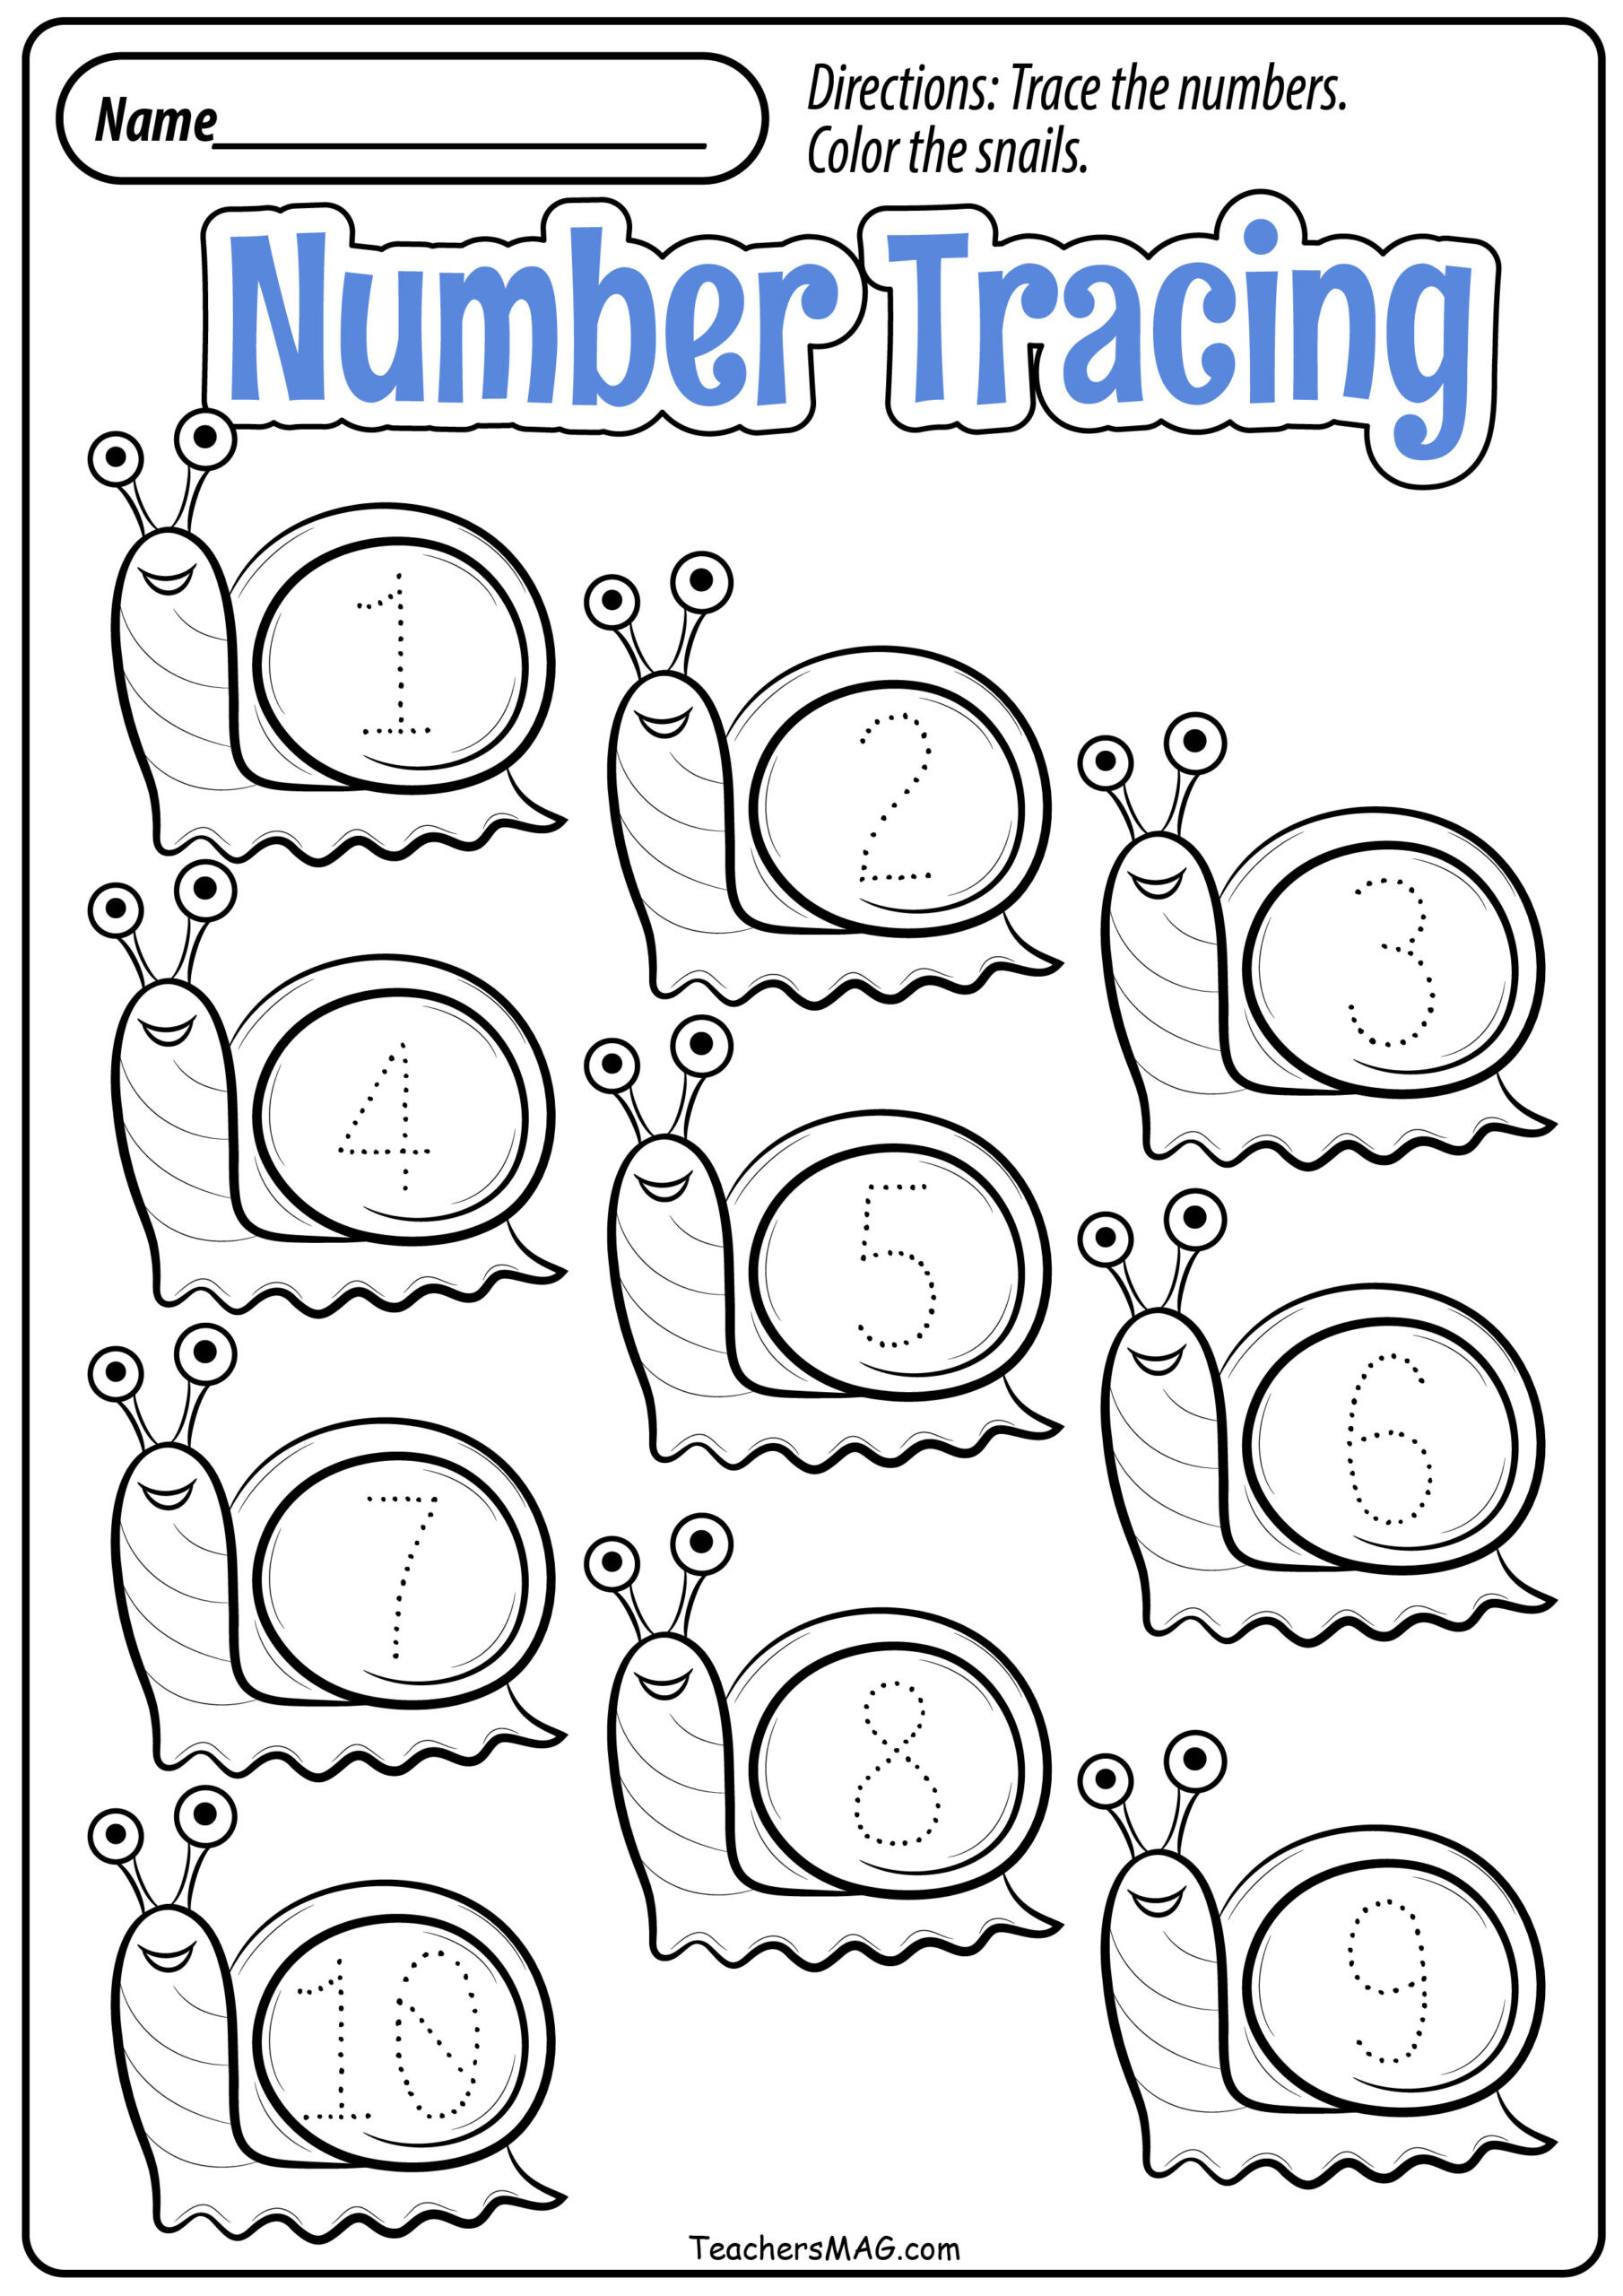 Grocery Shopping Math Worksheets Preschool Fall Math Worksheets Teachersmag Free Printable